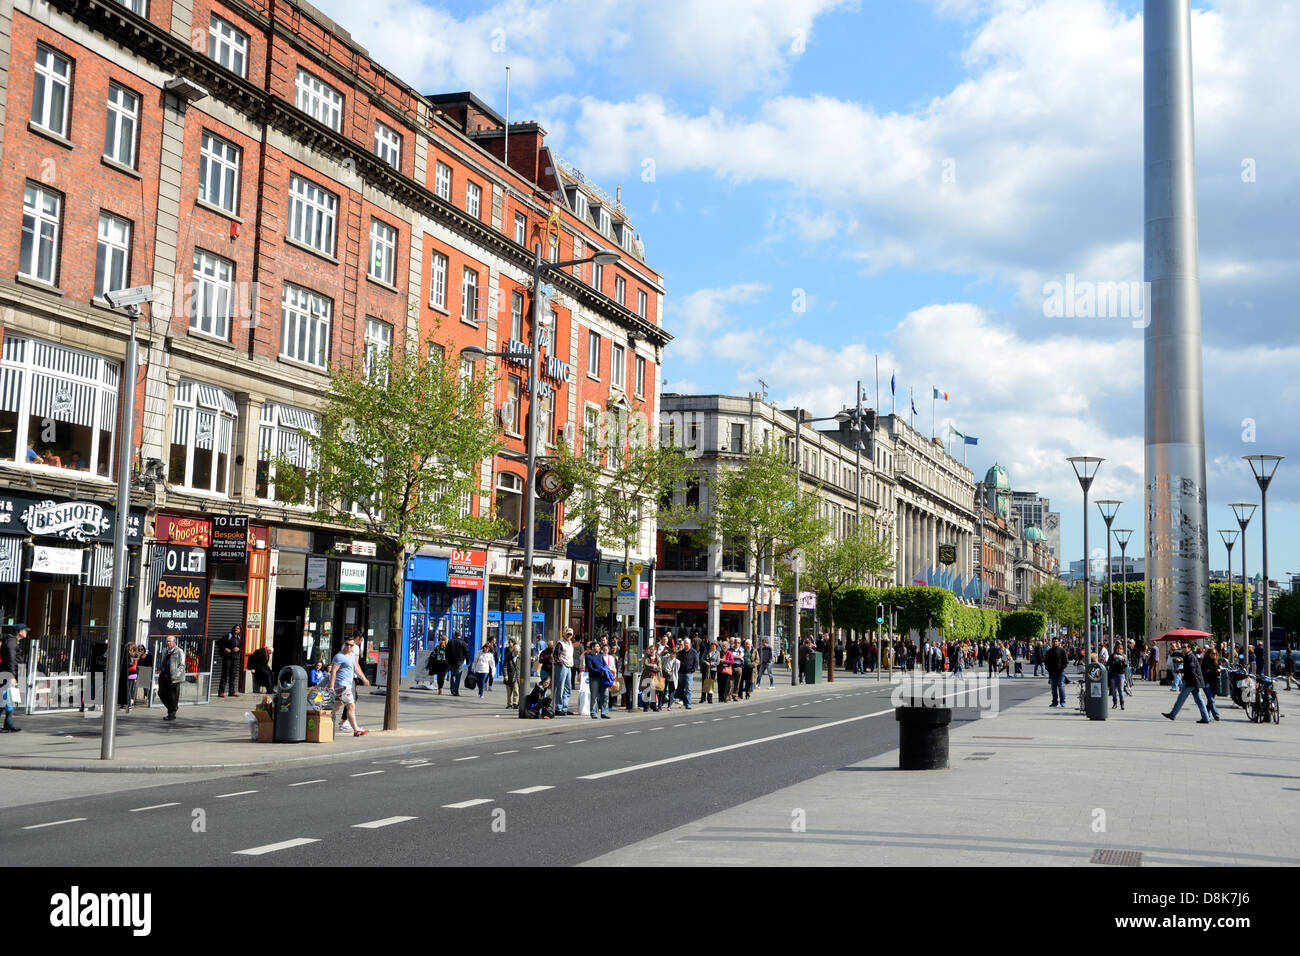 europa irland dublin stadt hauptstadt o 39 connell street stockfoto bild 56971438 alamy. Black Bedroom Furniture Sets. Home Design Ideas